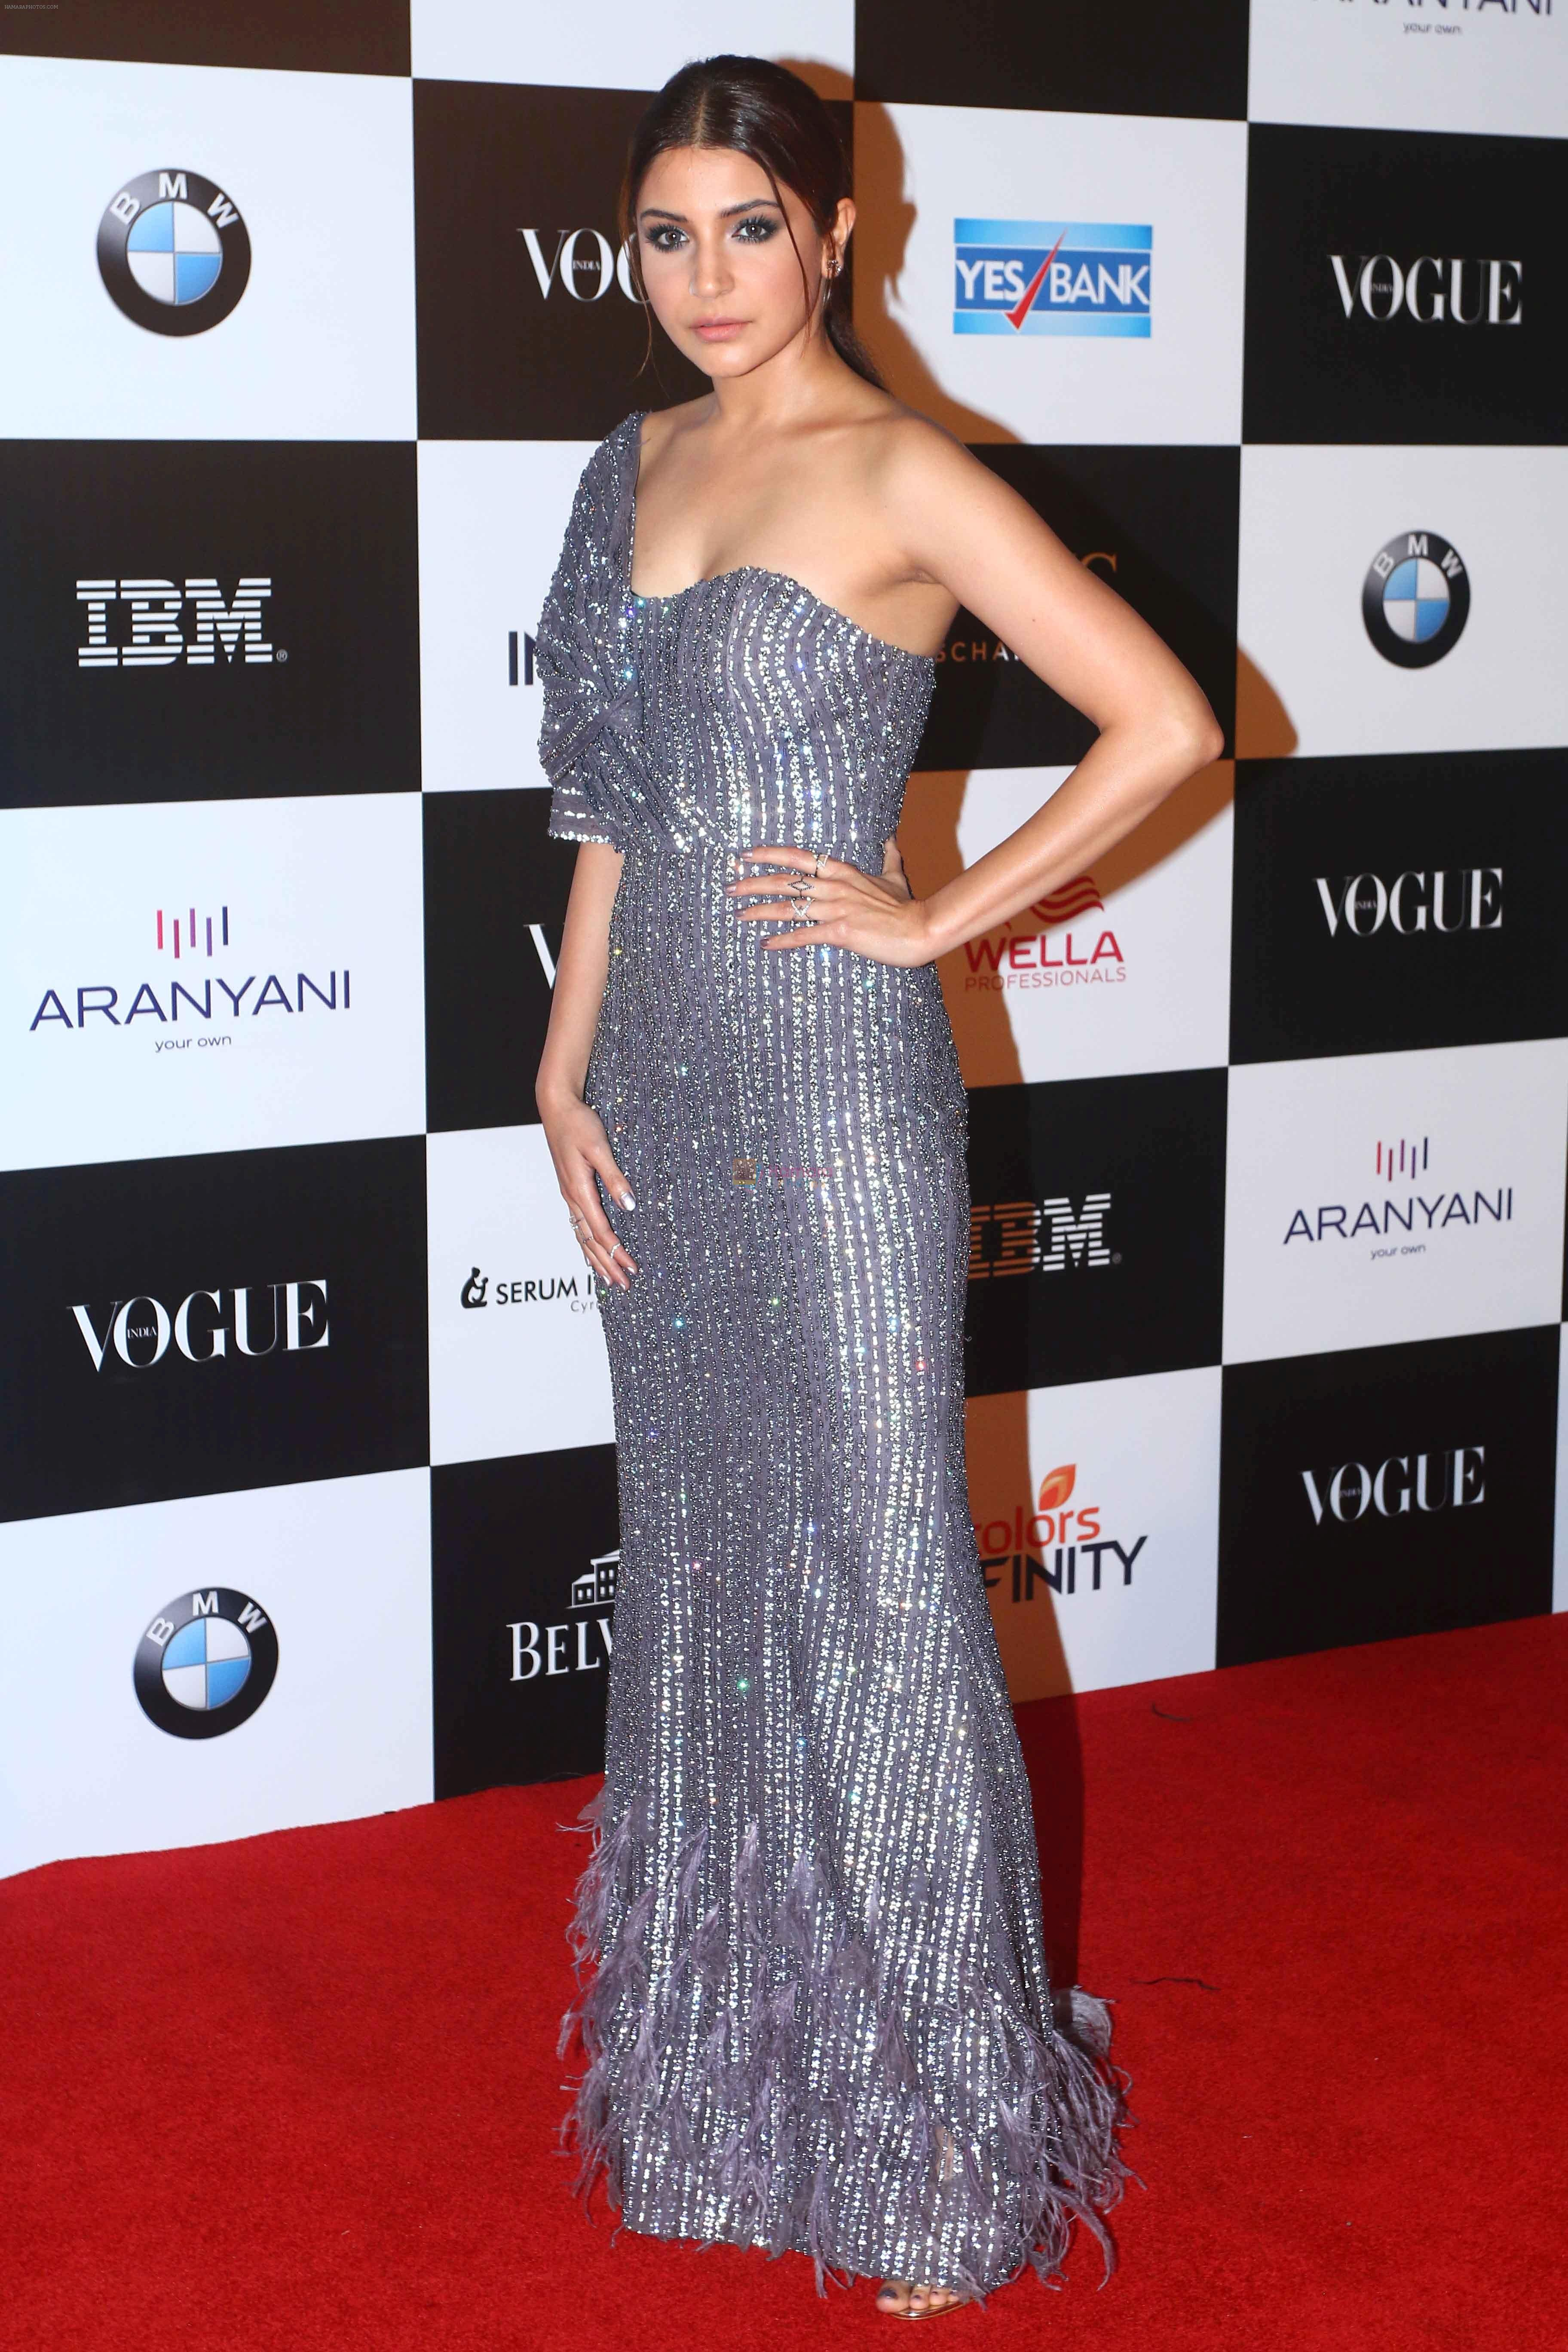 Anushka Sharma at the Red Carpet Of Vogue Women Of The Year 2017 on 25th Sept 2017